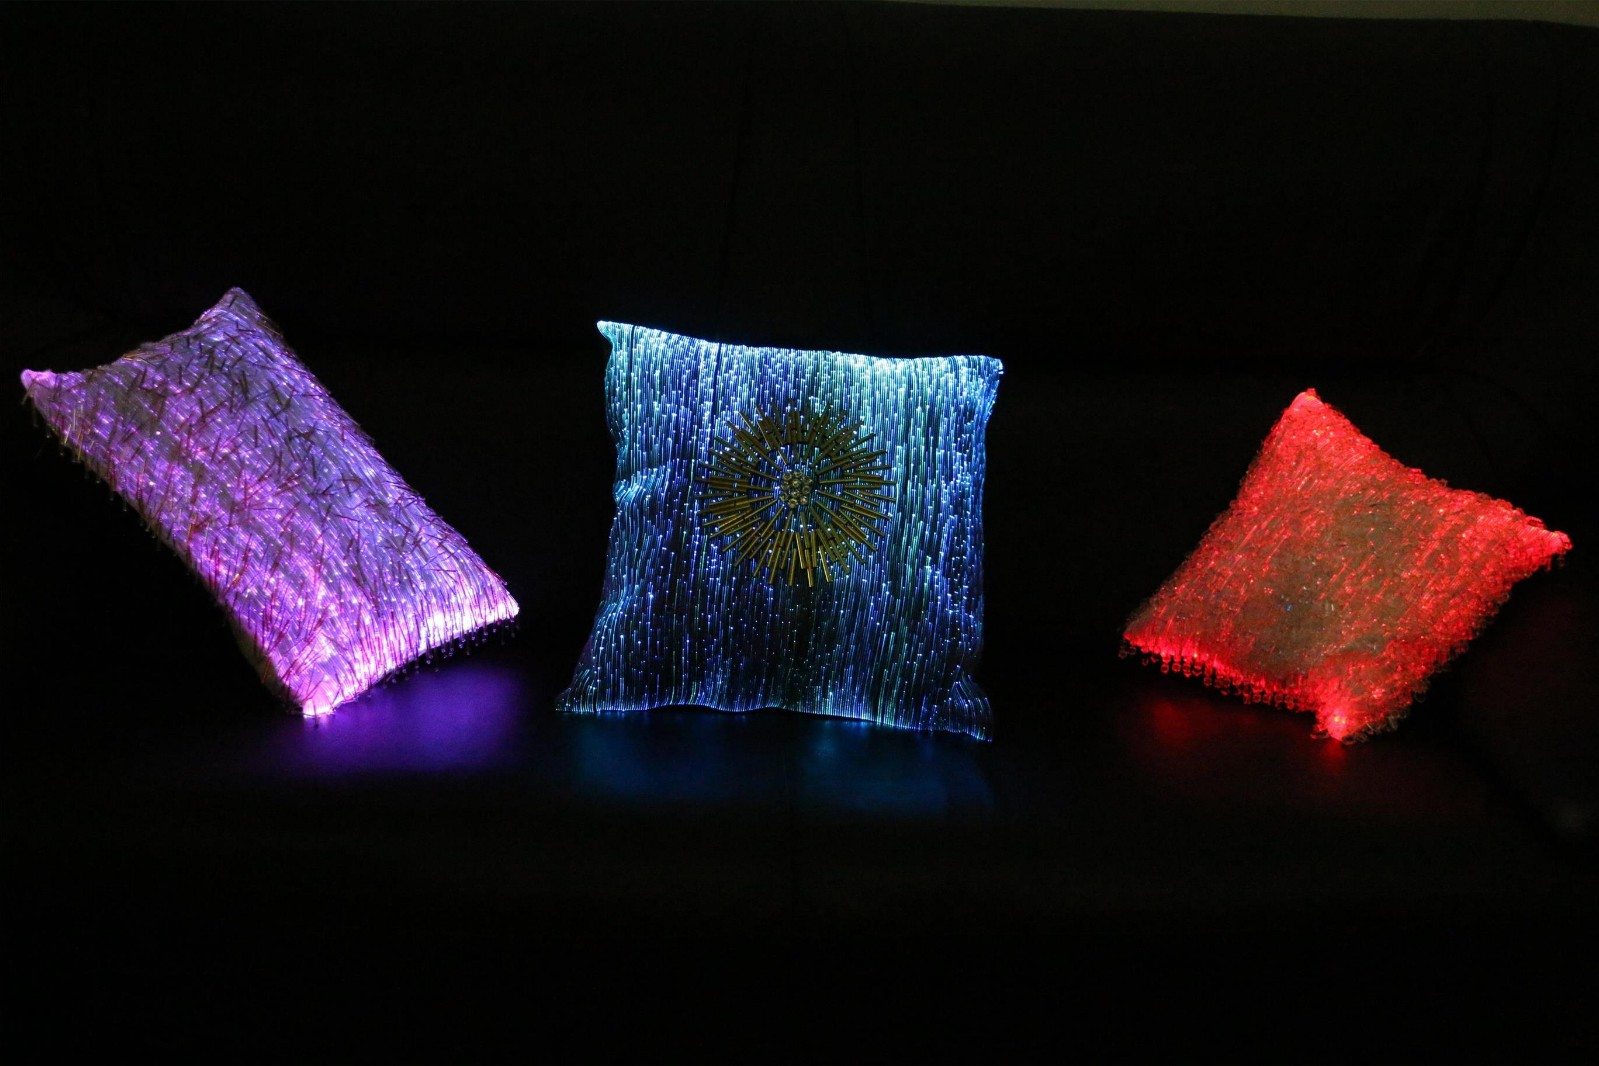 fiber optical fabric, fiber optic fabric, luminous fabric, led lighted fabric